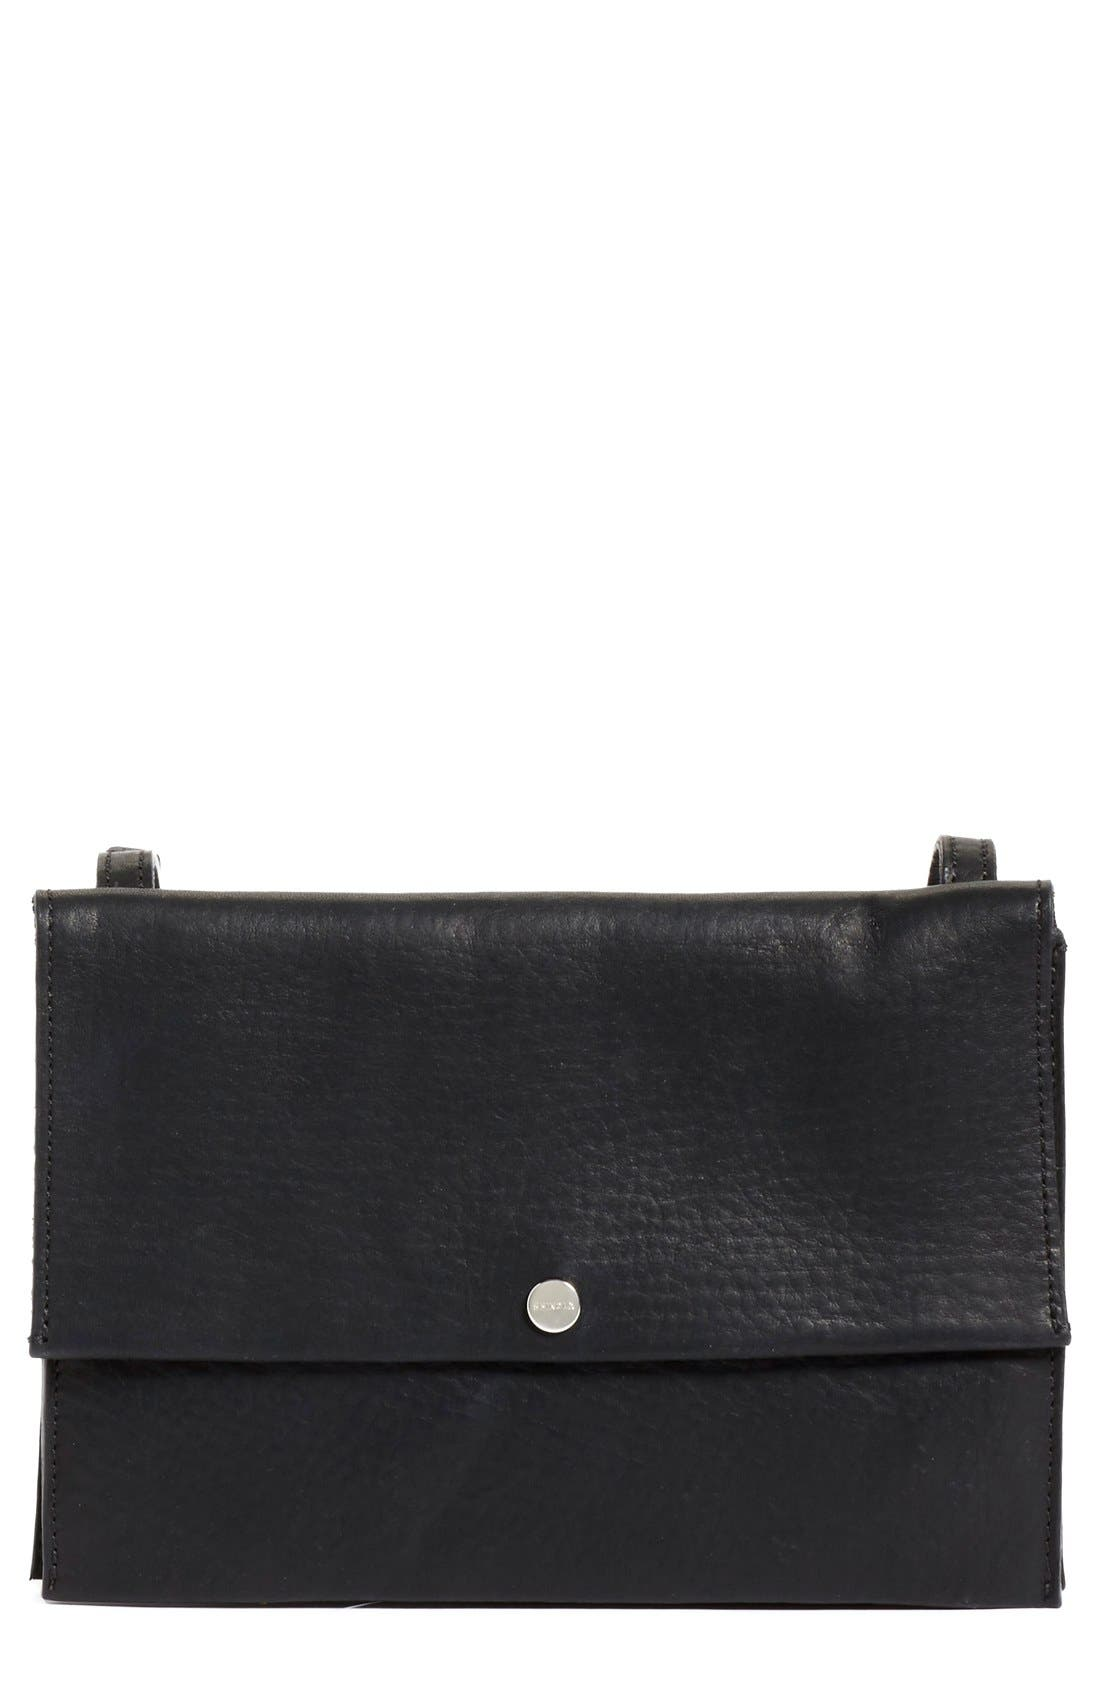 Crossbody Leather Bag,                             Main thumbnail 1, color,                             Black